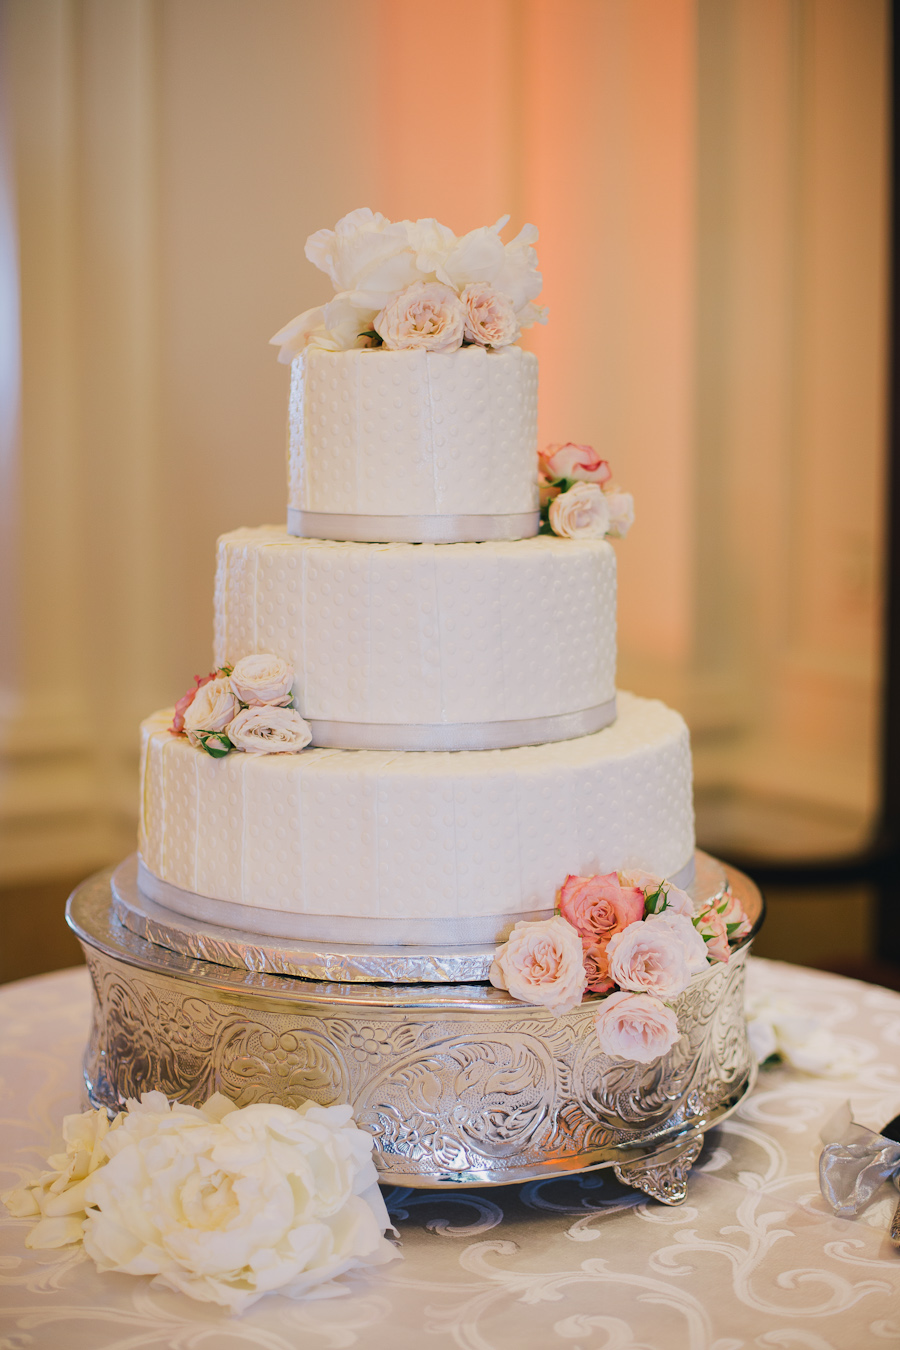 White Wedding Cake With Pink Flowers Elizabeth Anne Designs The